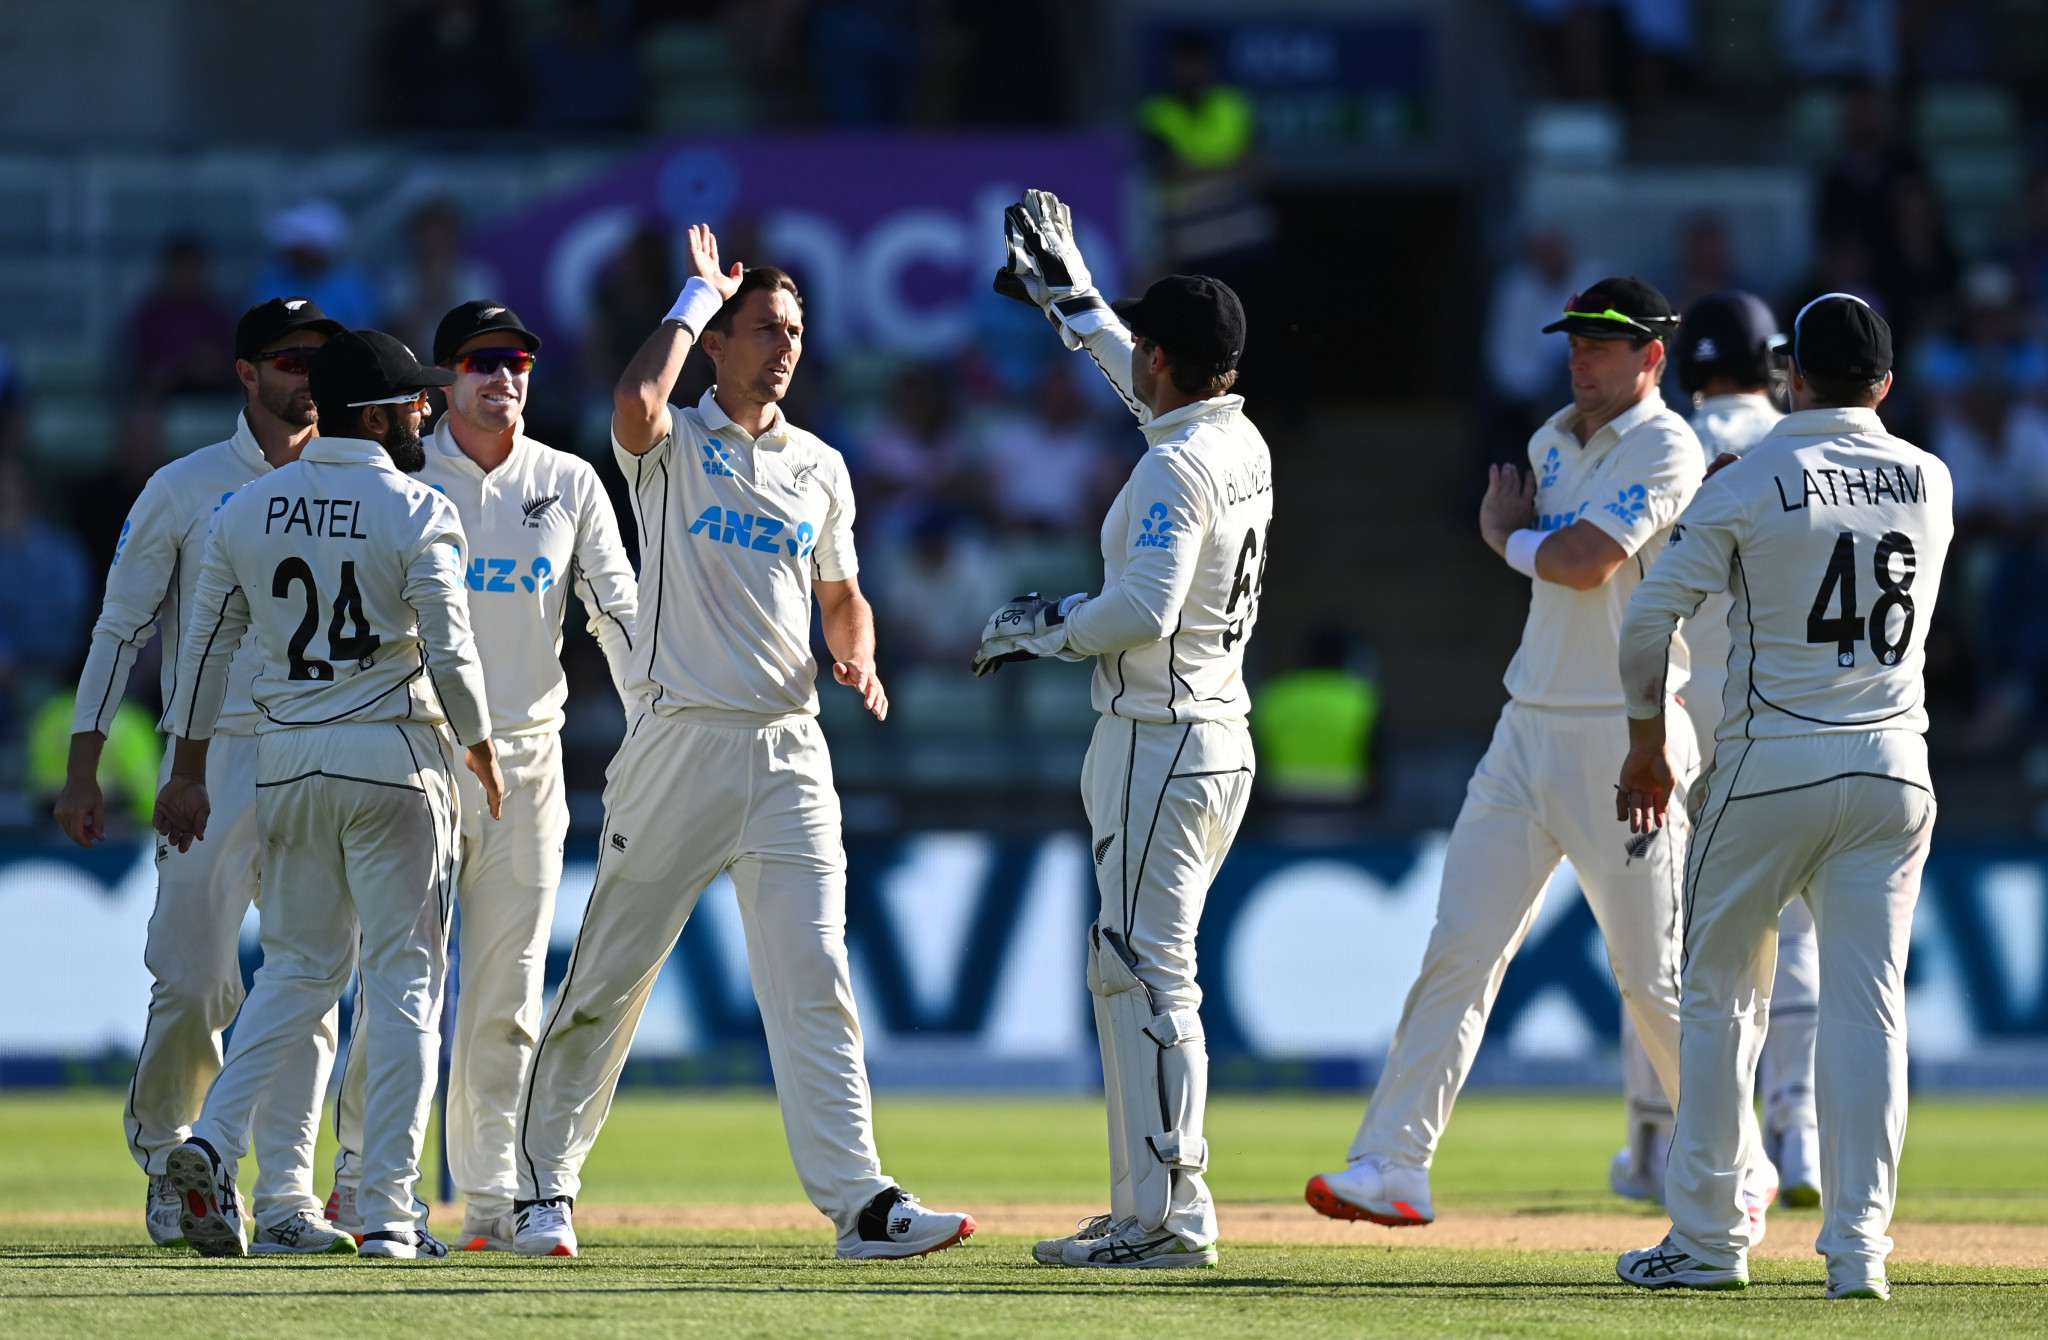 New Zealand, beaten by the narrowest of margins by England in the 2019 Cricket World Cup final, will seek to win a major ICC event for the first time when the World Test Championship final starts tomorrow ©Getty Images